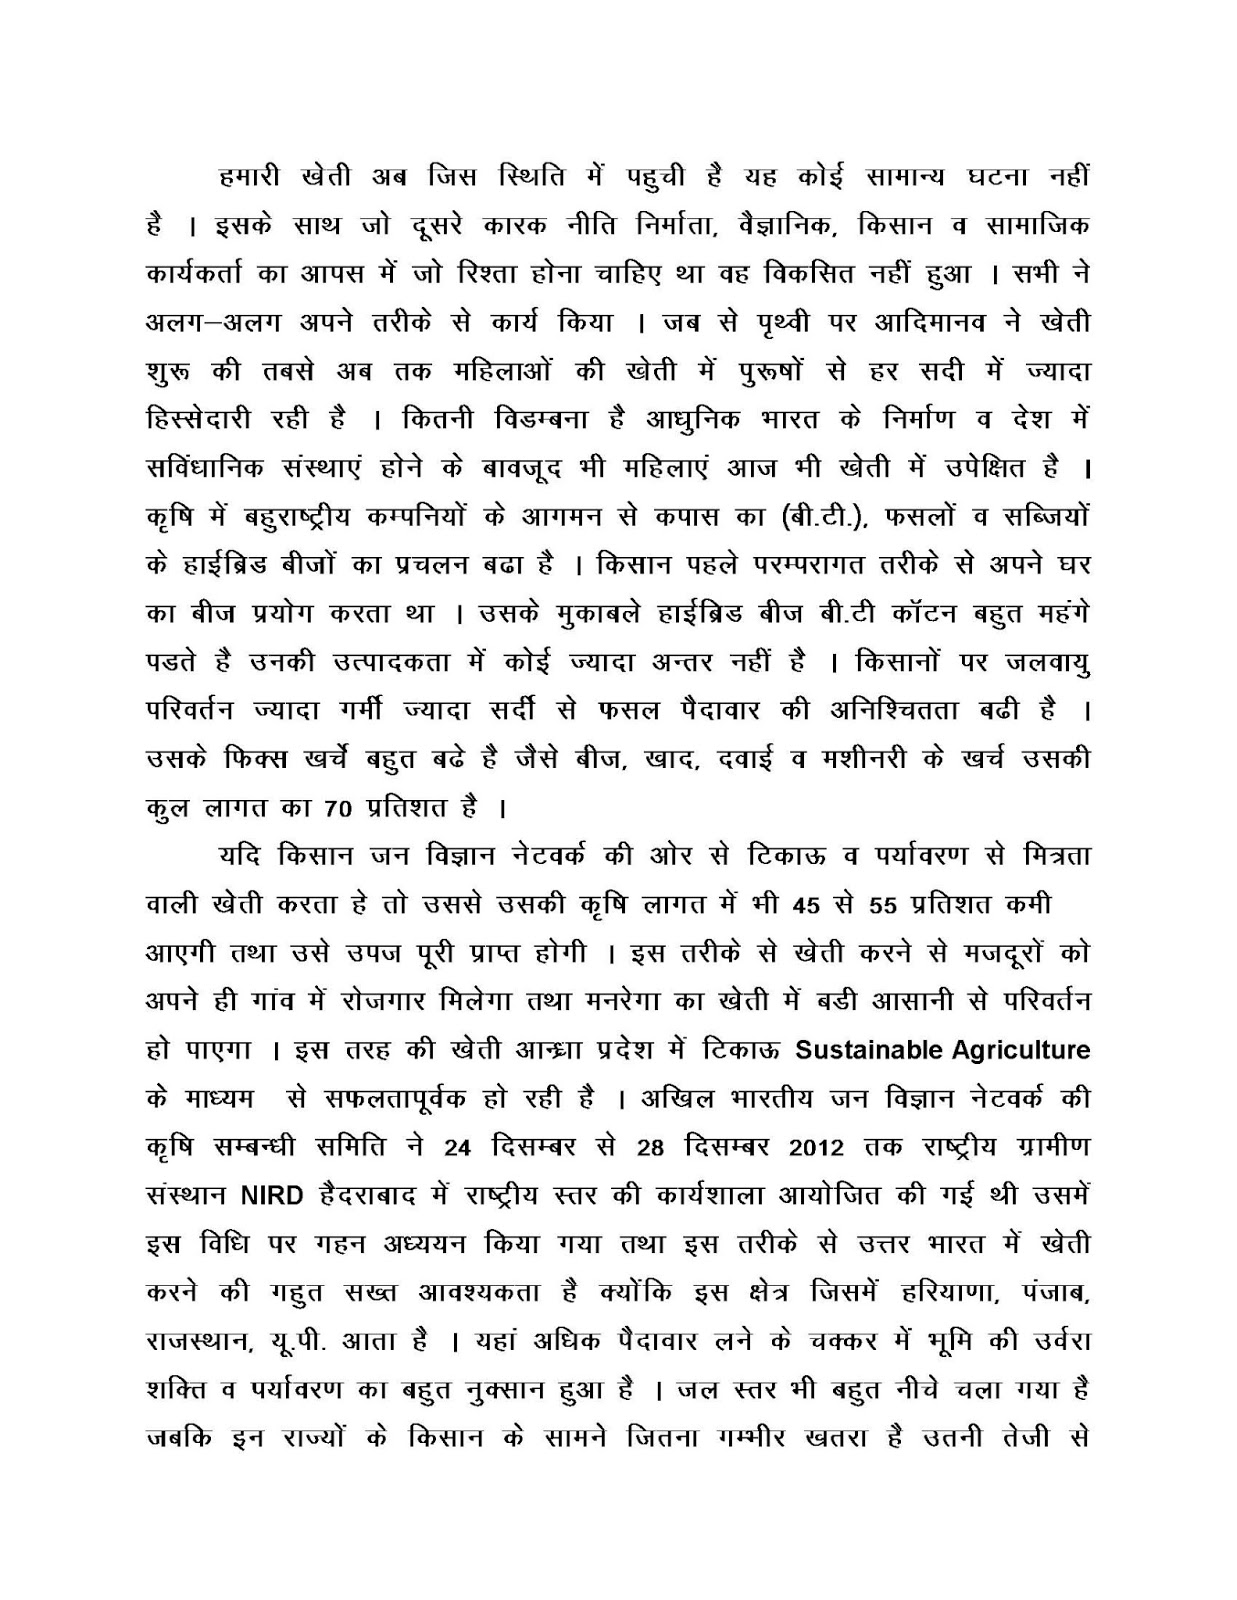 008 Essay Example Hindiworkdr Rajindersingh Page 3 Formidable Equality Conclusion Gender Wikipedia In Hindi Of Opportunity Full